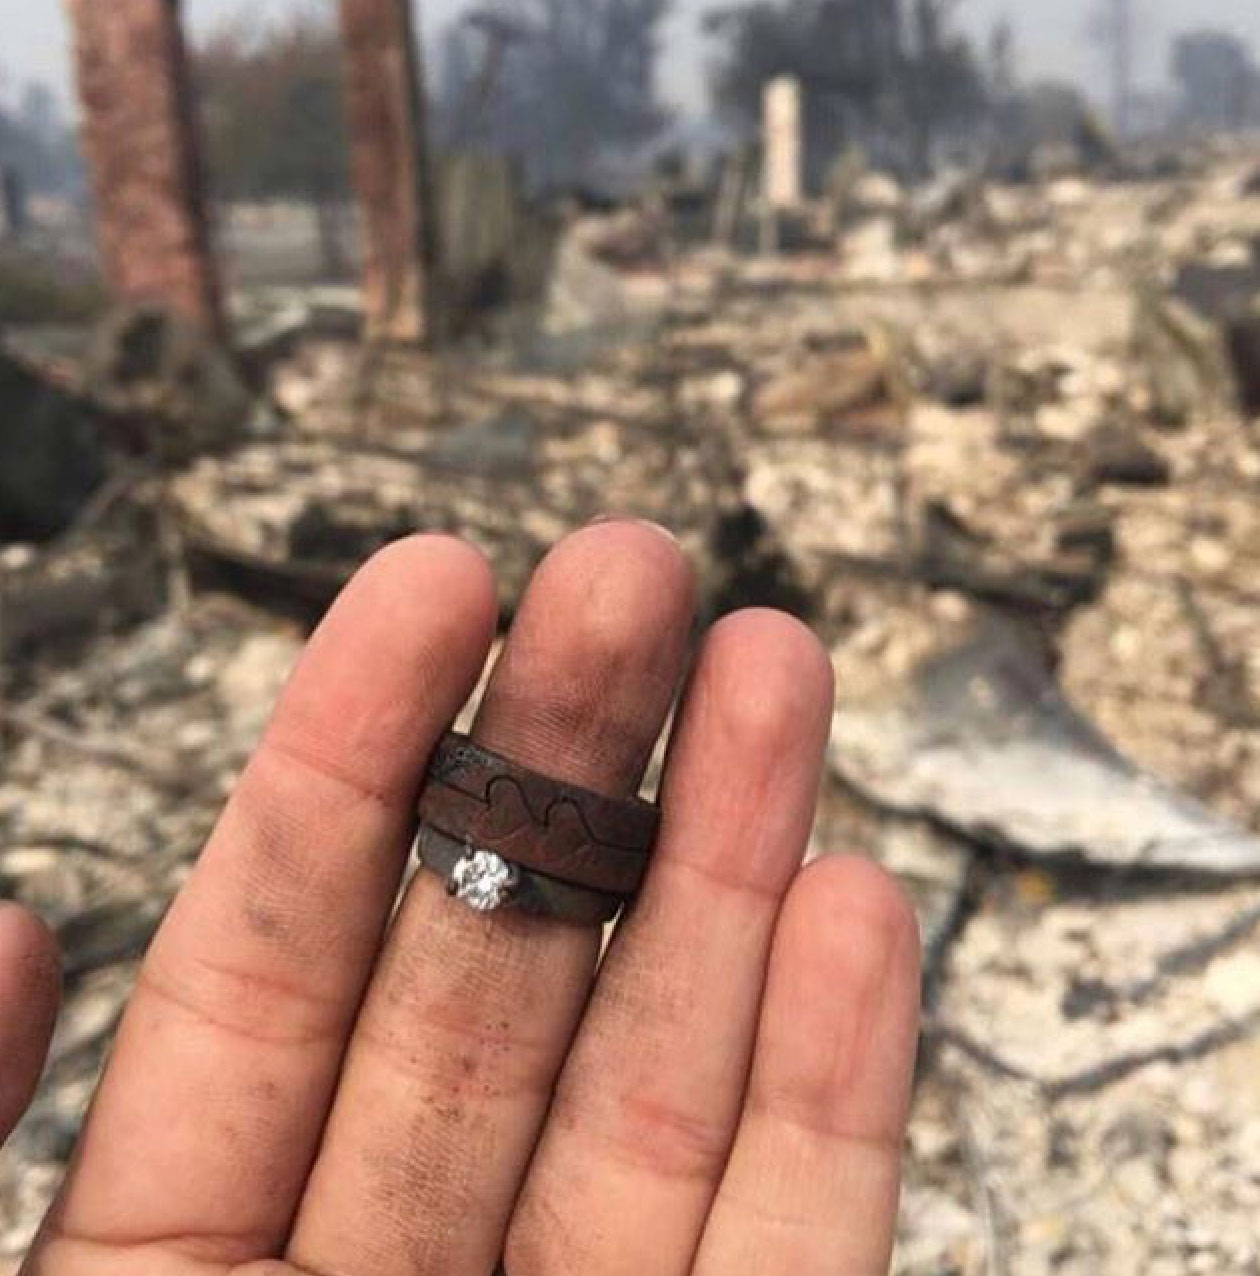 "<div class=""meta image-caption""><div class=""origin-logo origin-image none""><span>none</span></div><span class=""caption-text"">These rings were found in the rubble of a home, the person who took the photo said. It was captioned, ''Today, tomorrow, and everyday after that you need to love harder...'' (djgraystone/Instagram)</span></div>"